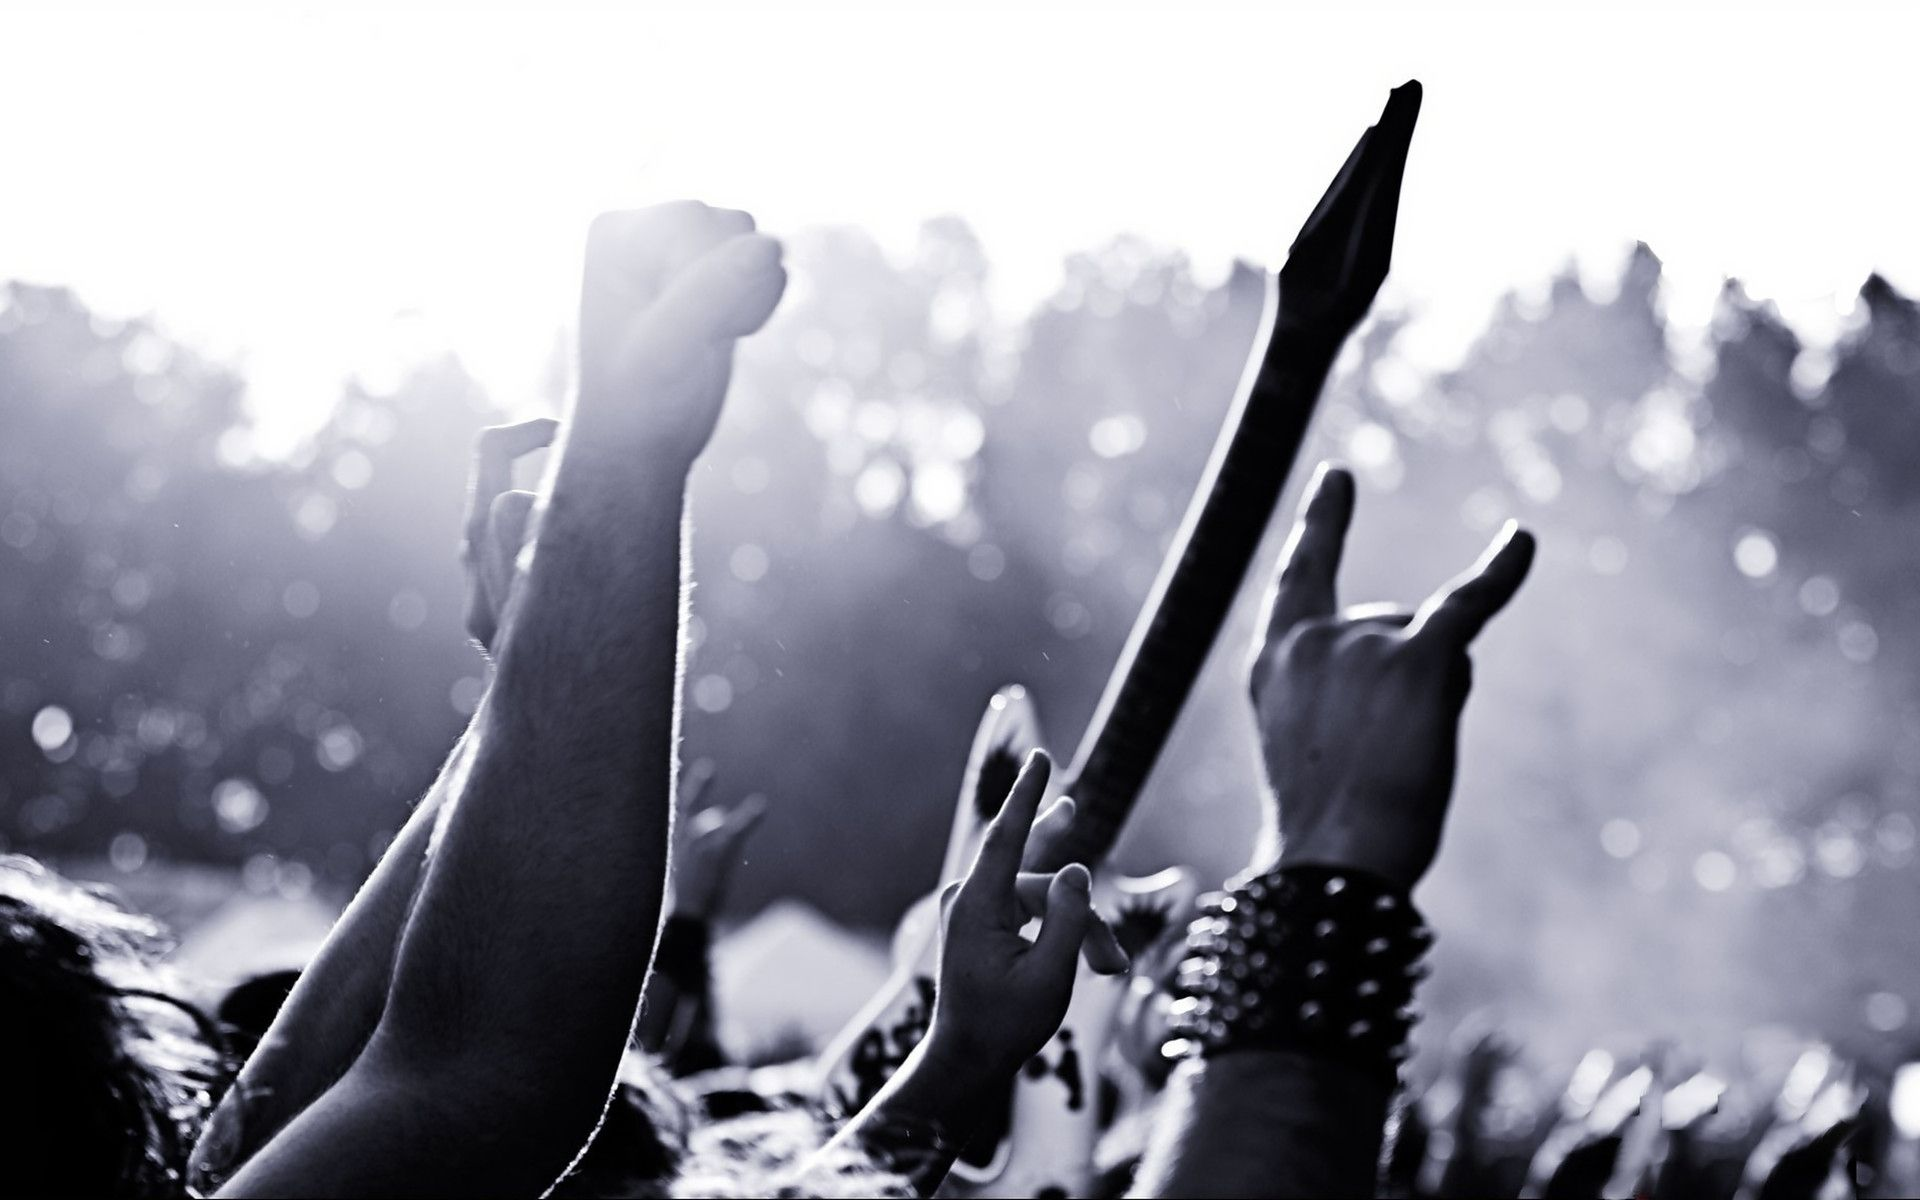 Metal music background - There Is A Fine Distinction To Be Made Between Hard Rock And Heavy Metal Music